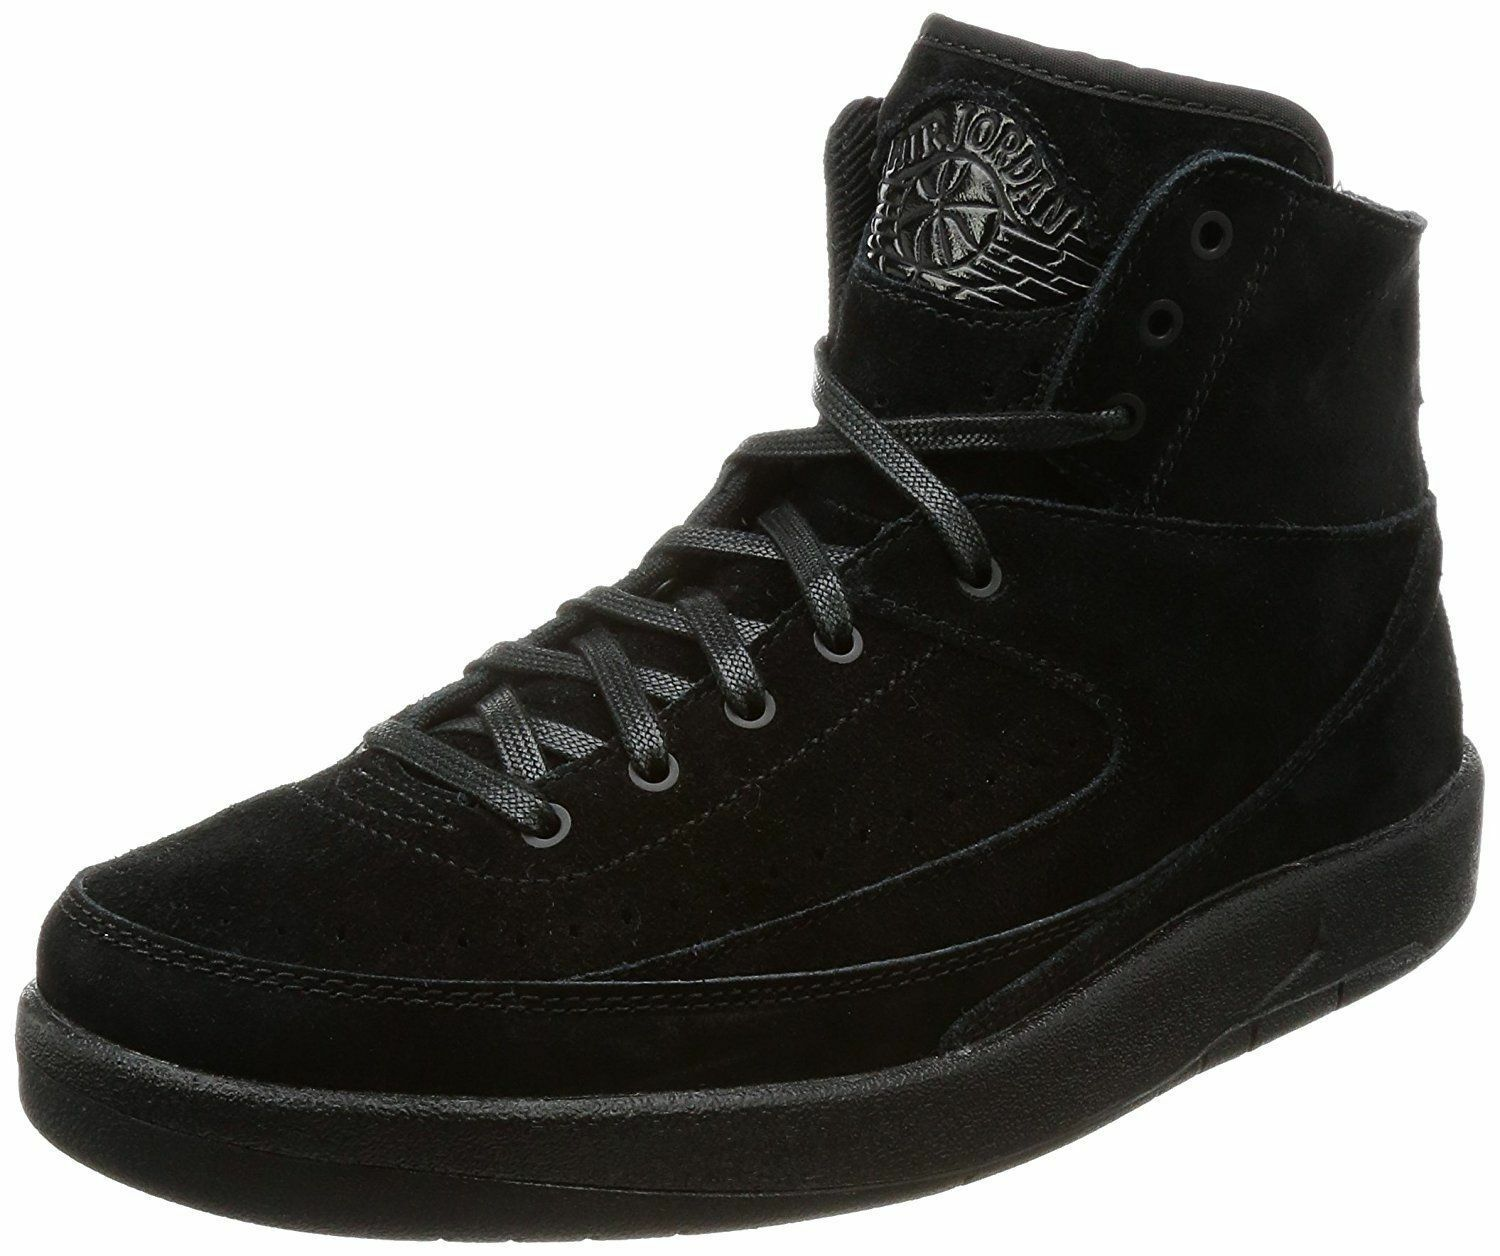 Air Jordan 2 Retro Decon Men's Basketball shoes Size 8 Black 897521-010 (NEW)